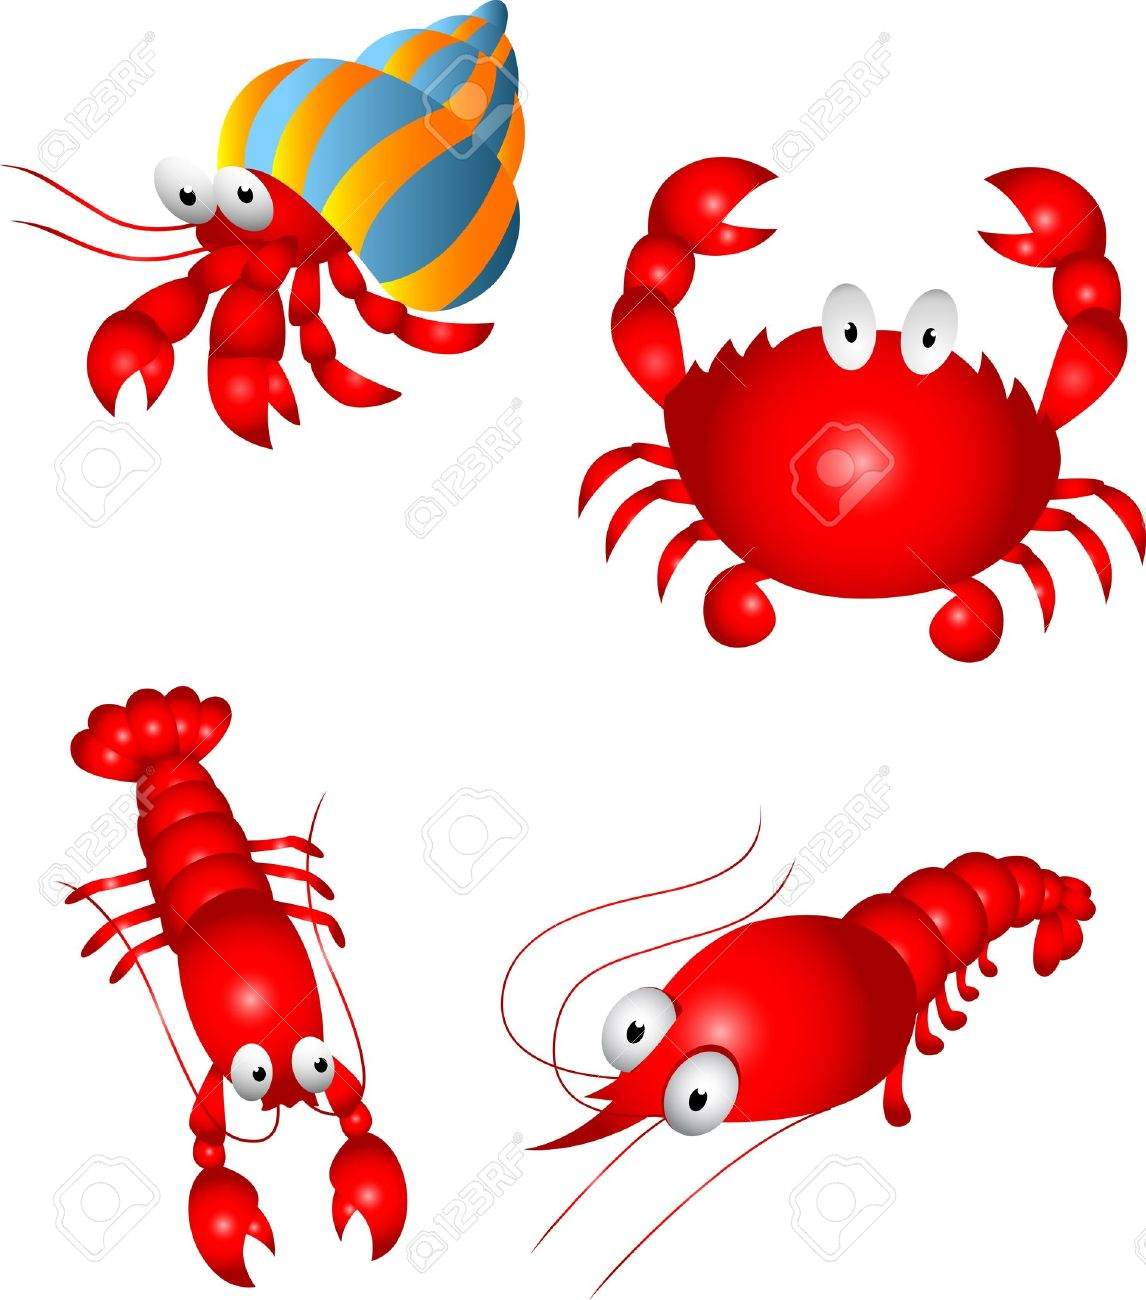 Crustacean Character Royalty Free Cliparts, Vectors, And Stock.